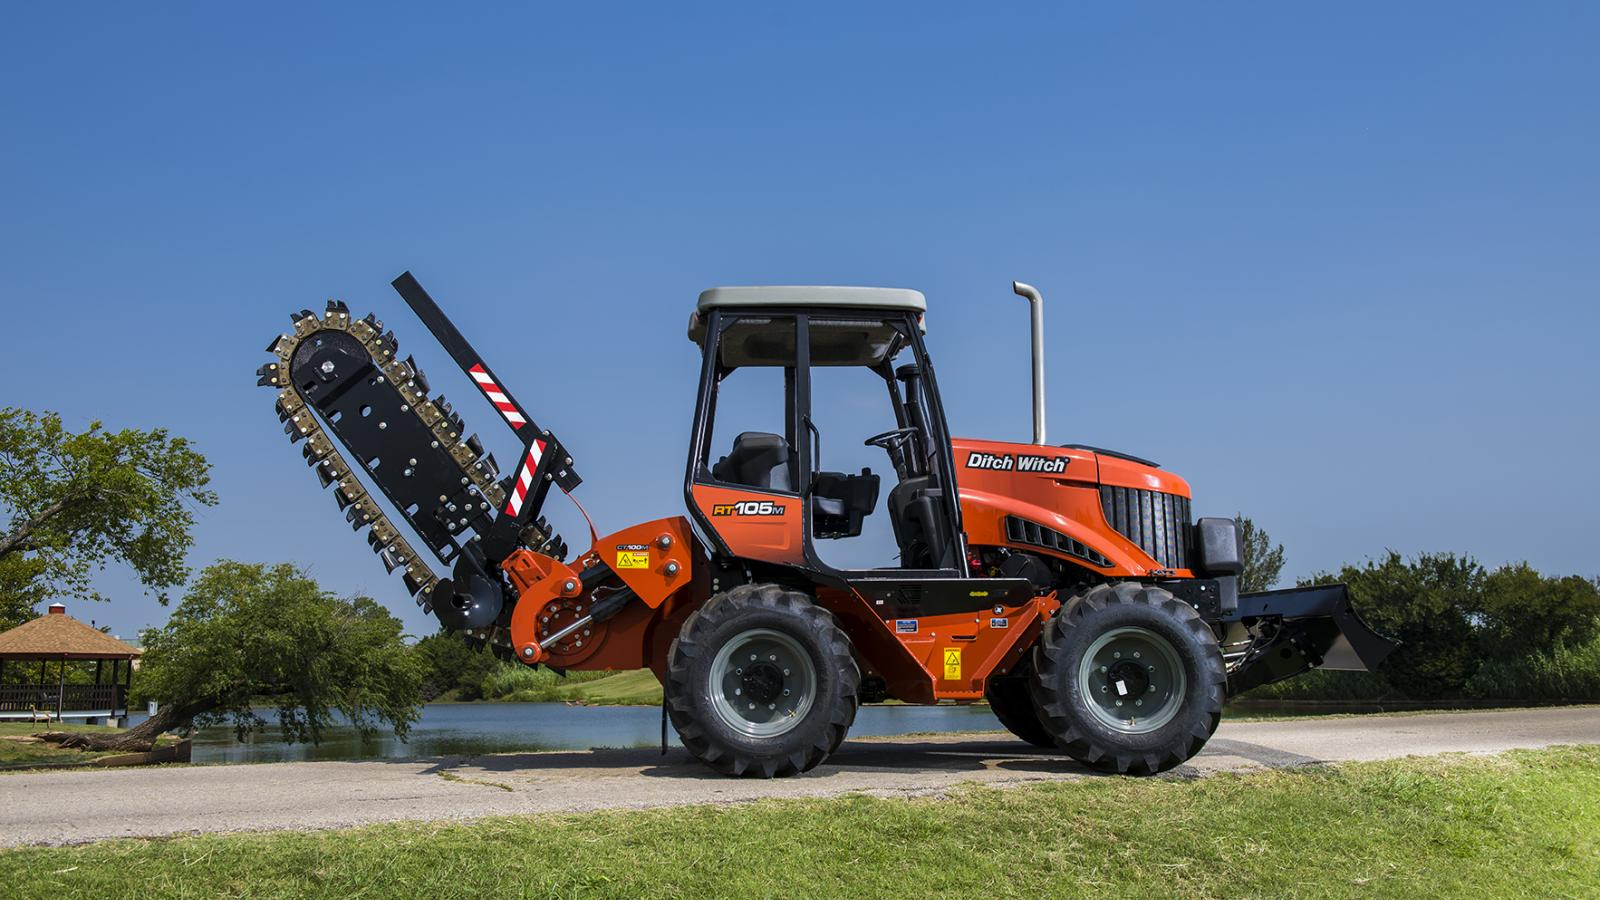 Ditch Witch RT105 Ride-On Trencher